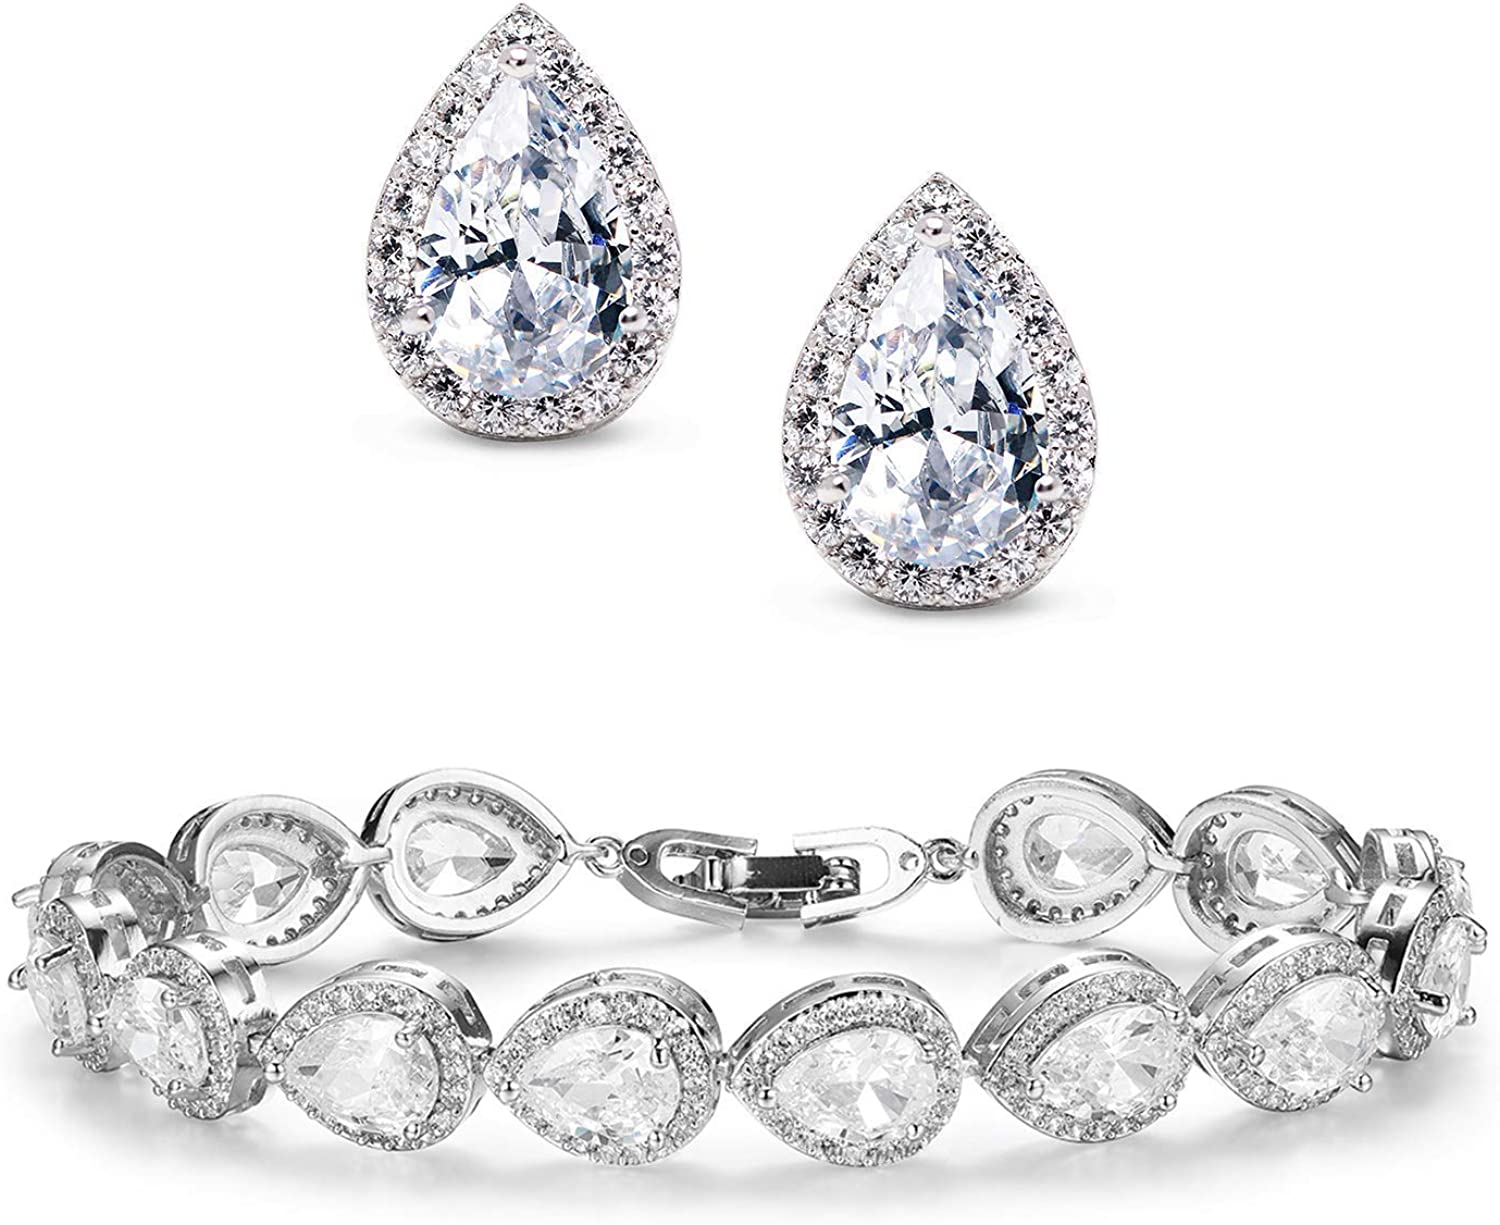 SWEETV Bridal Earrings and Bracelets Jewelry Set for brides,bridesmaid